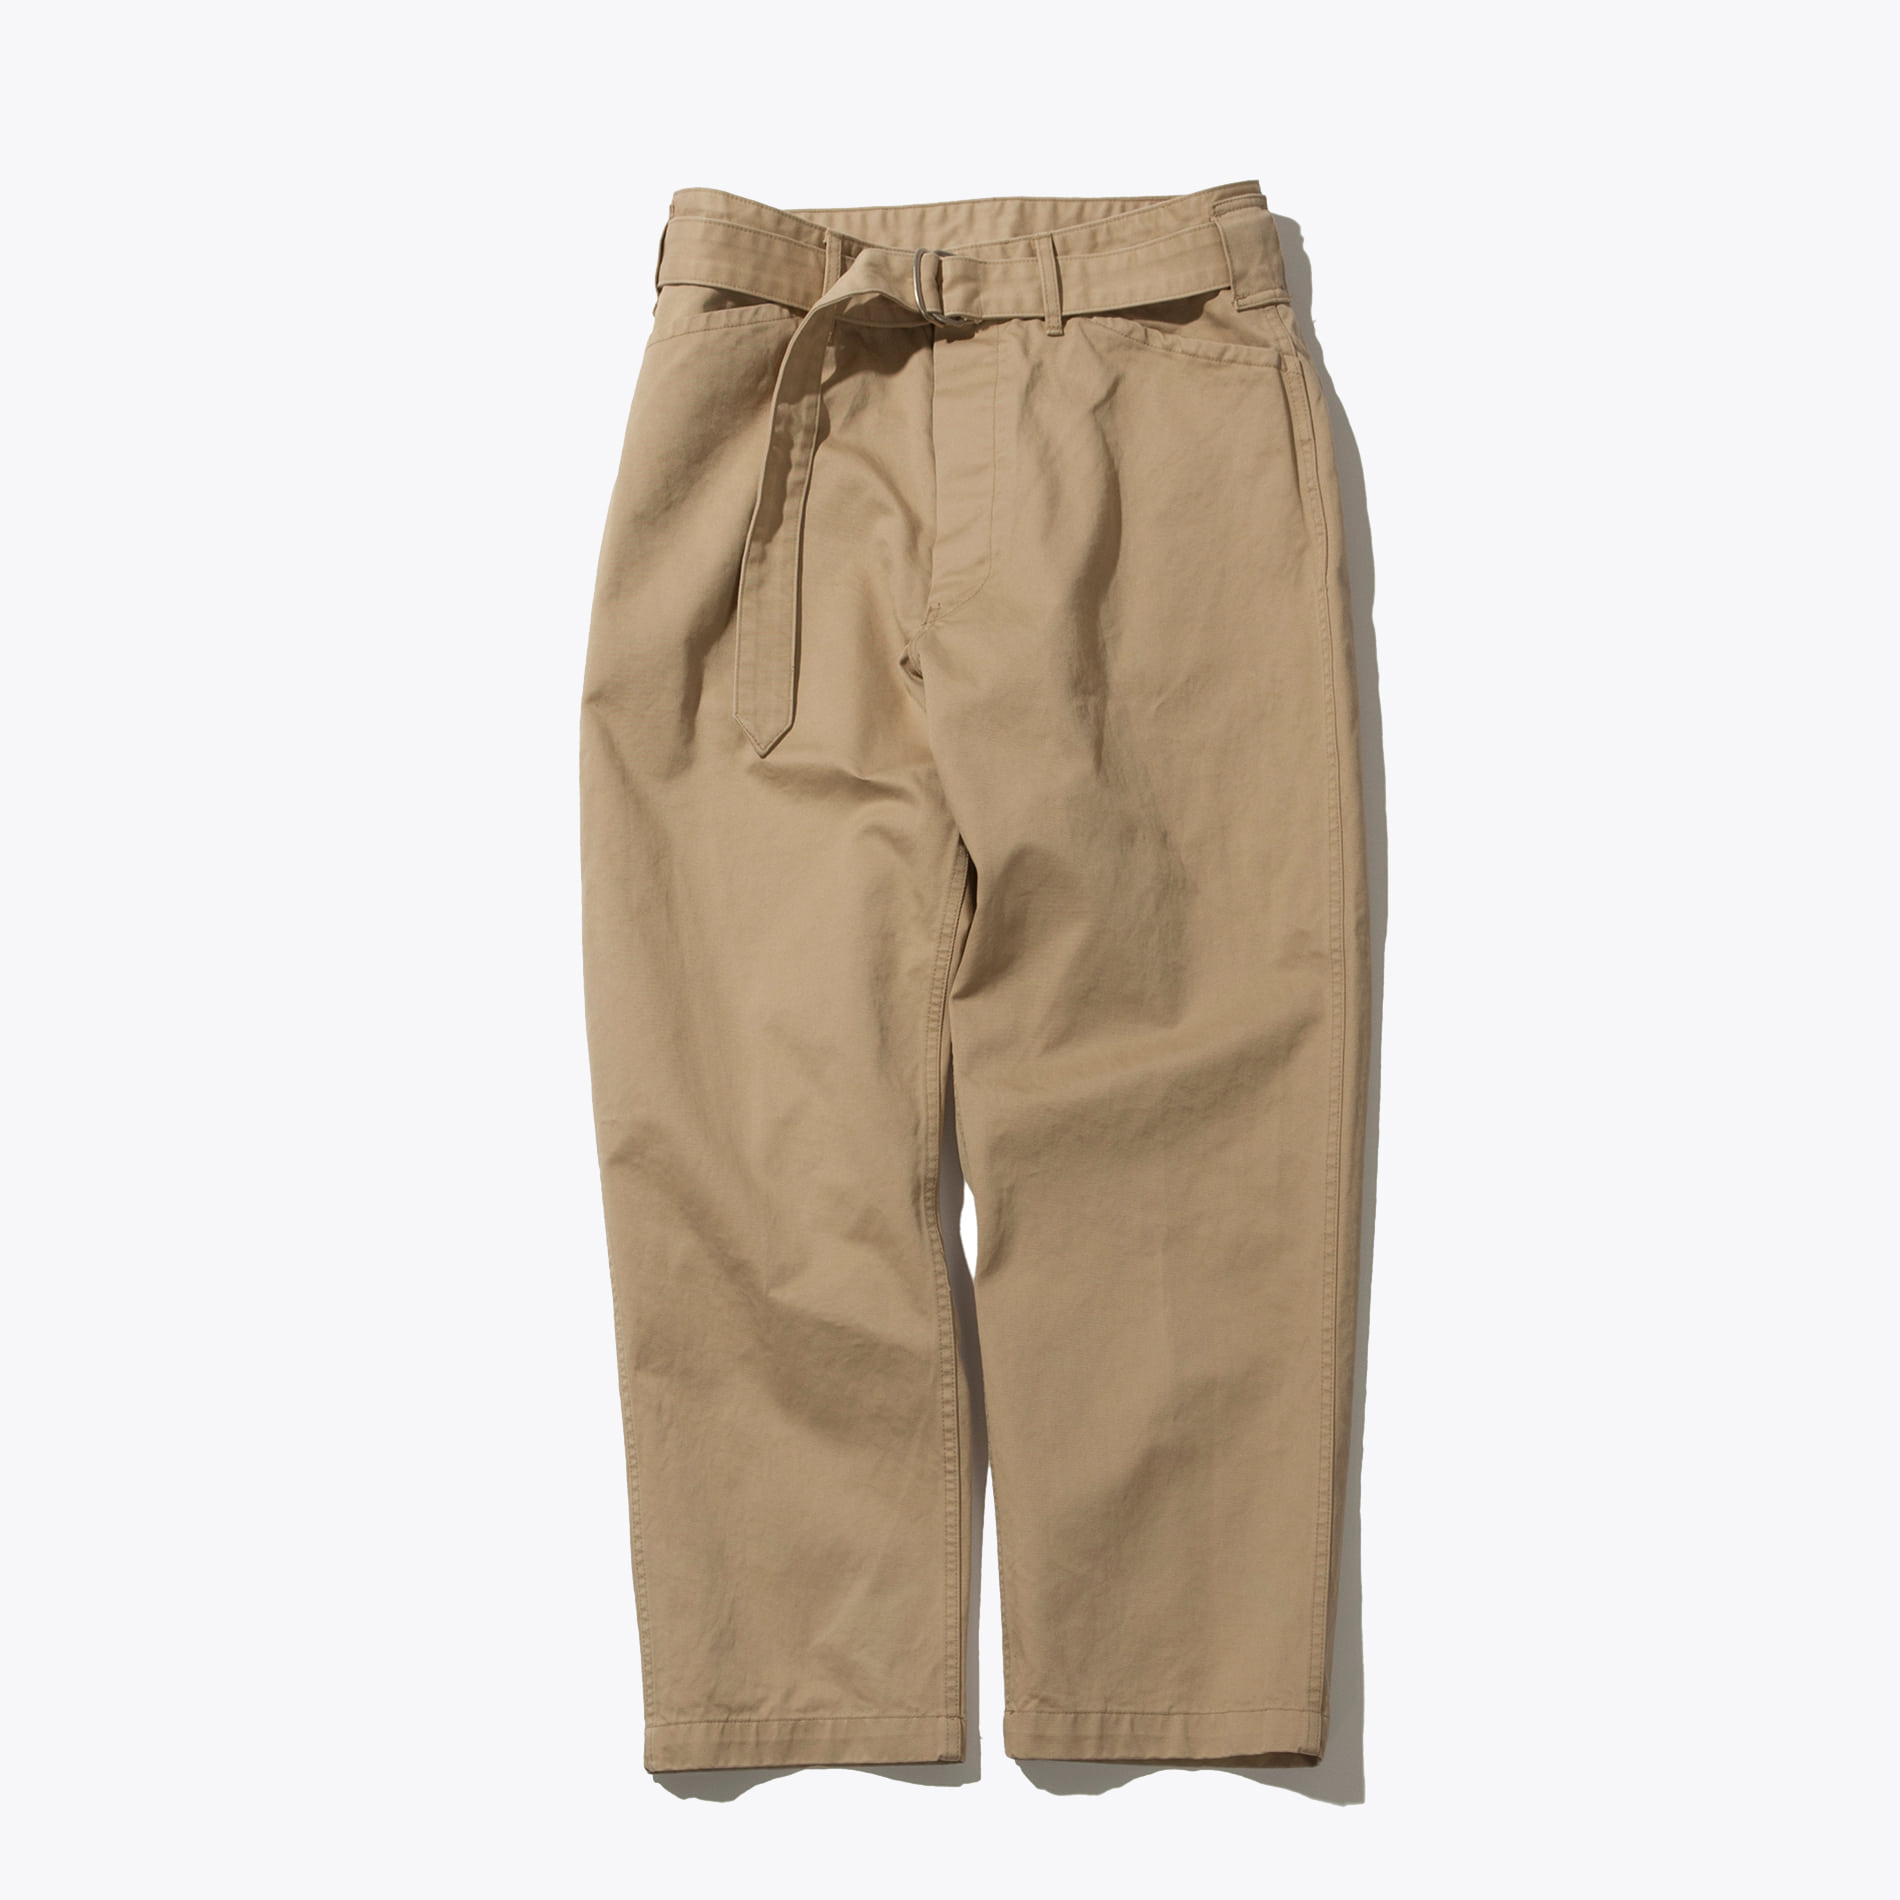 BELTED FATIGUE PANTS BEIGE